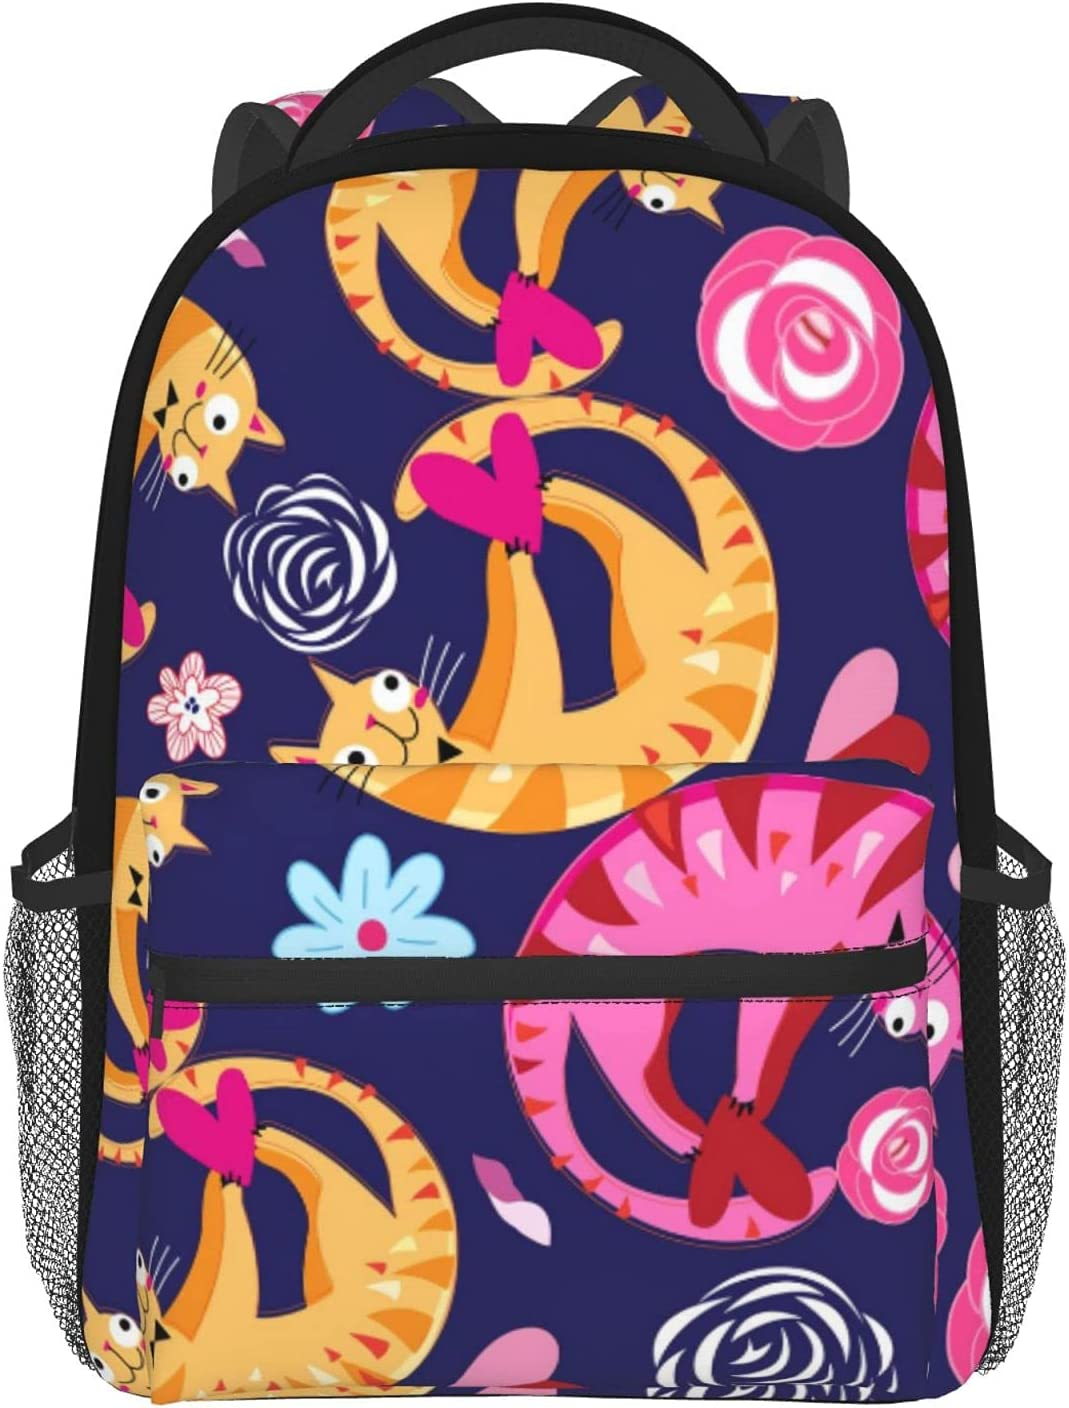 Lovers Cheap SALE Start Cats Floral Pattern School Mini Boo Max 48% OFF Backpacks Lightweight